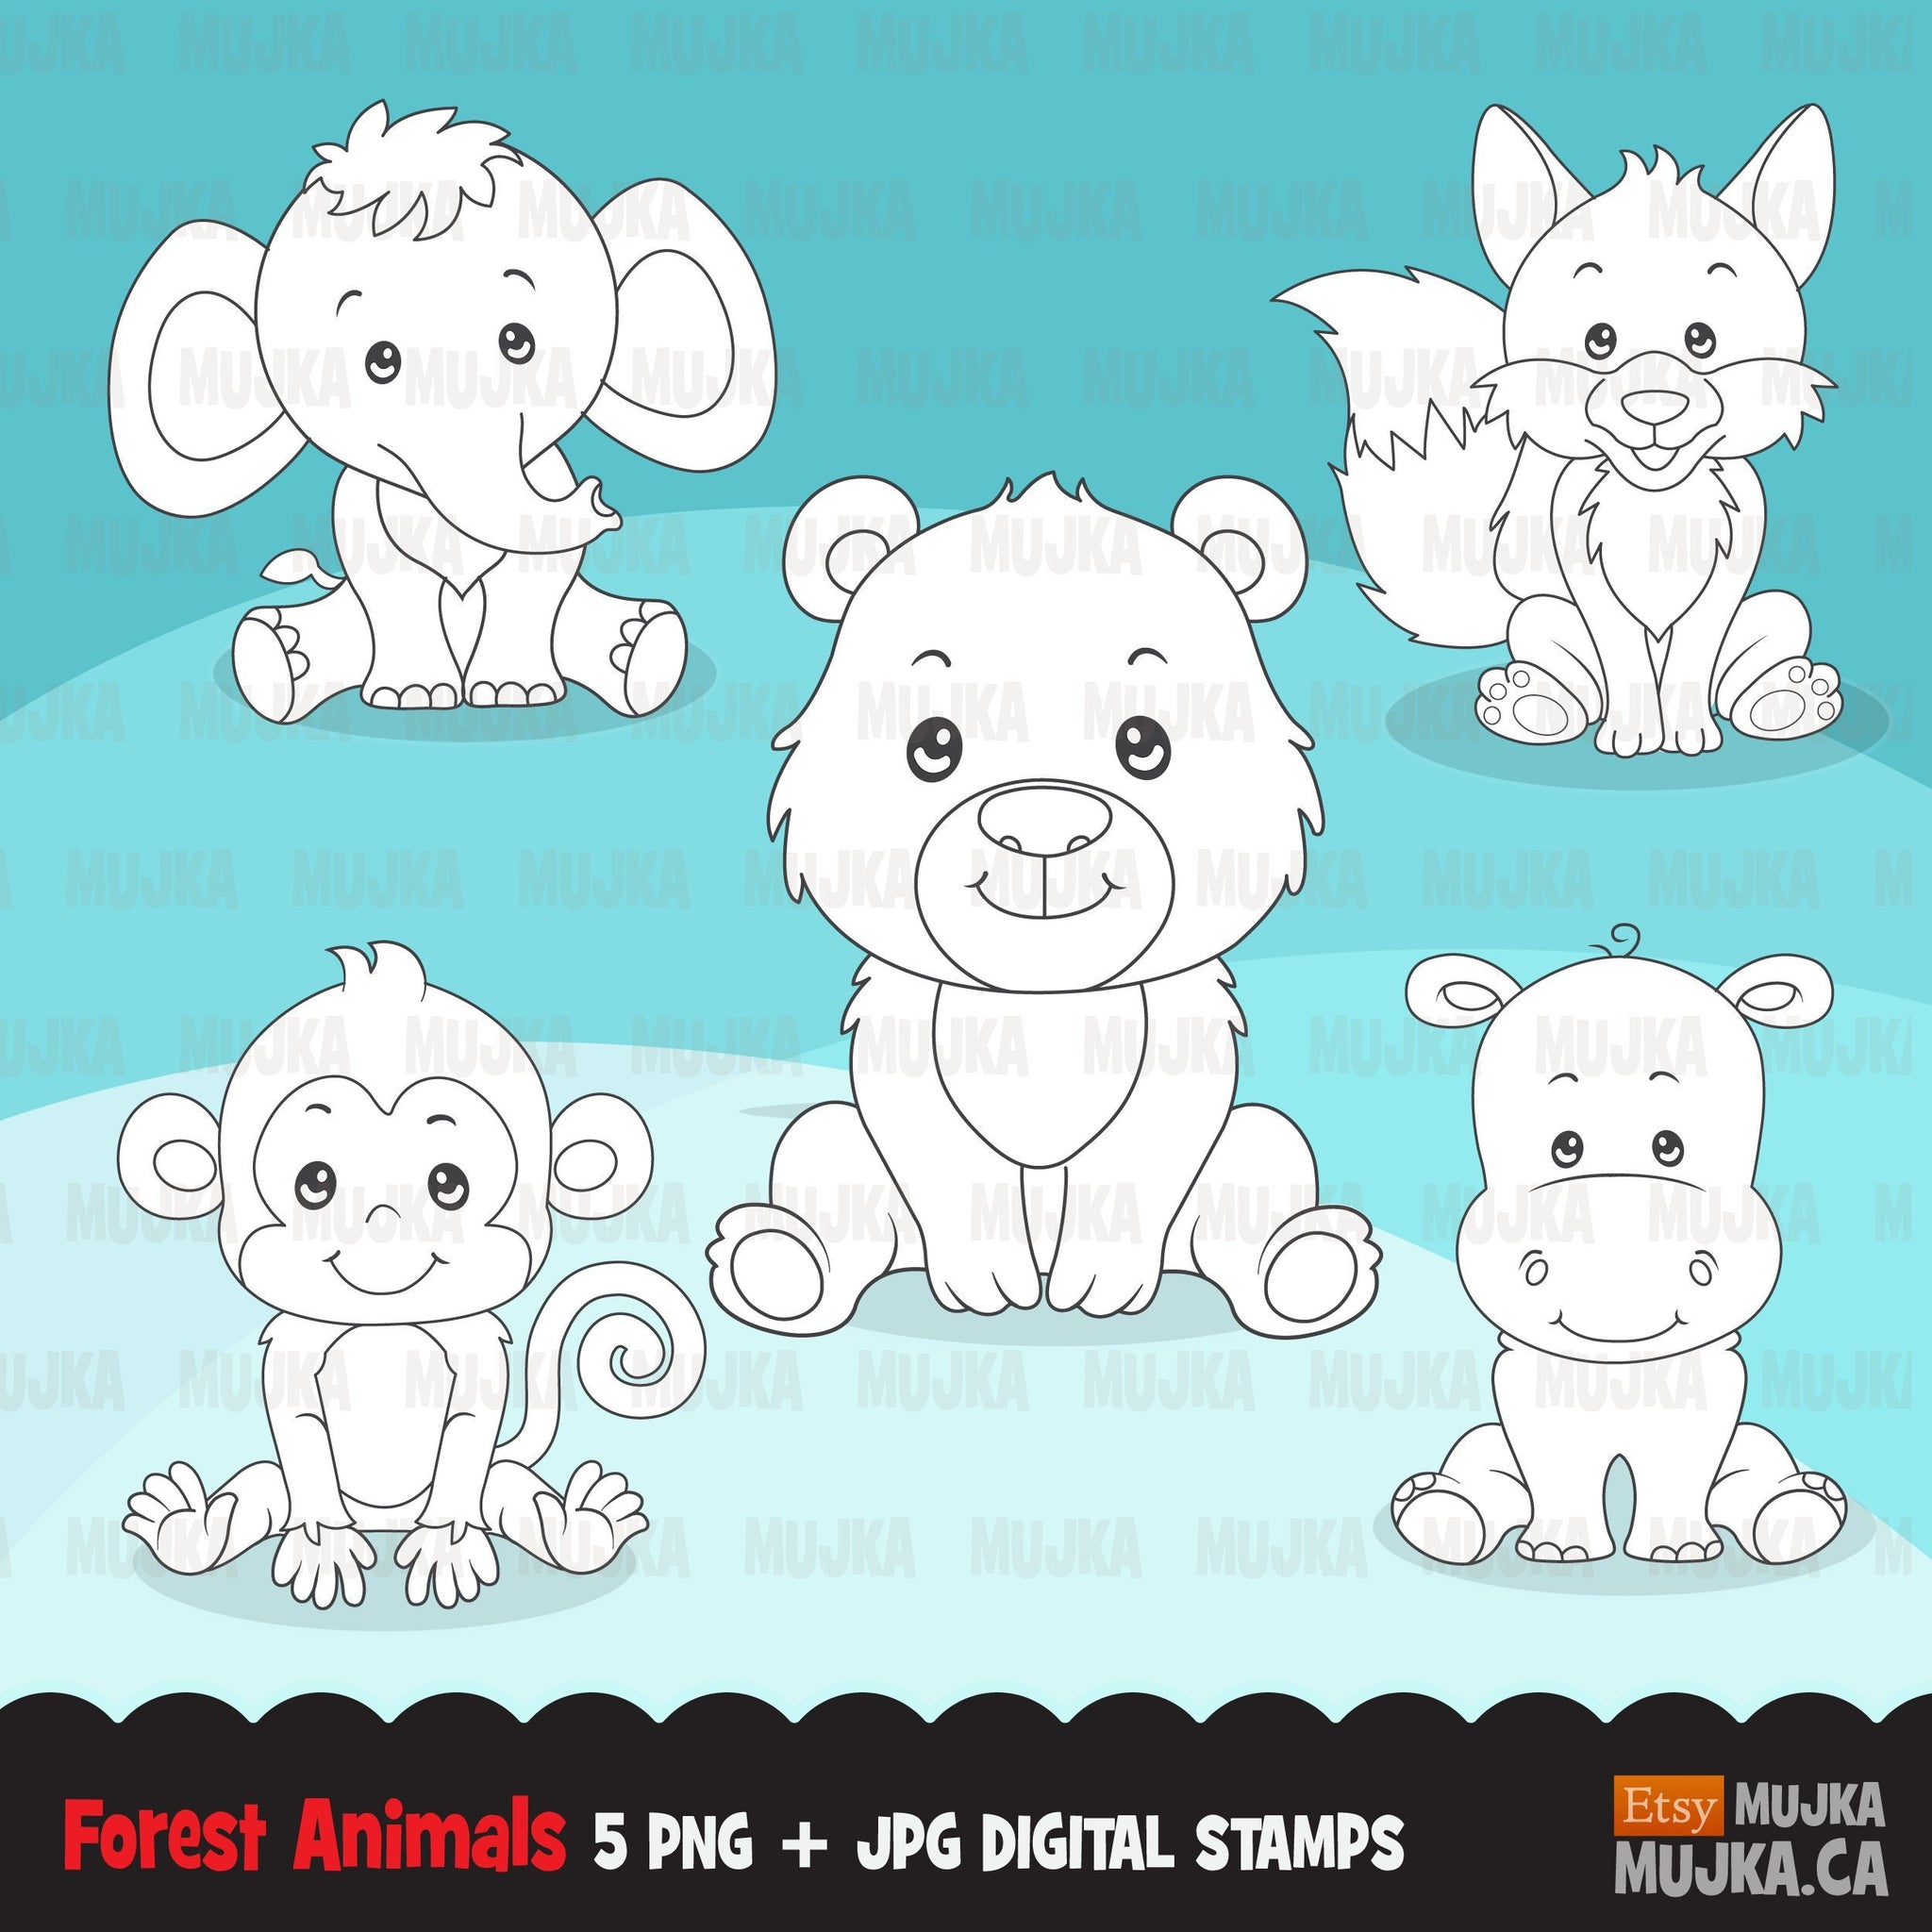 Forest Animal digital stamps